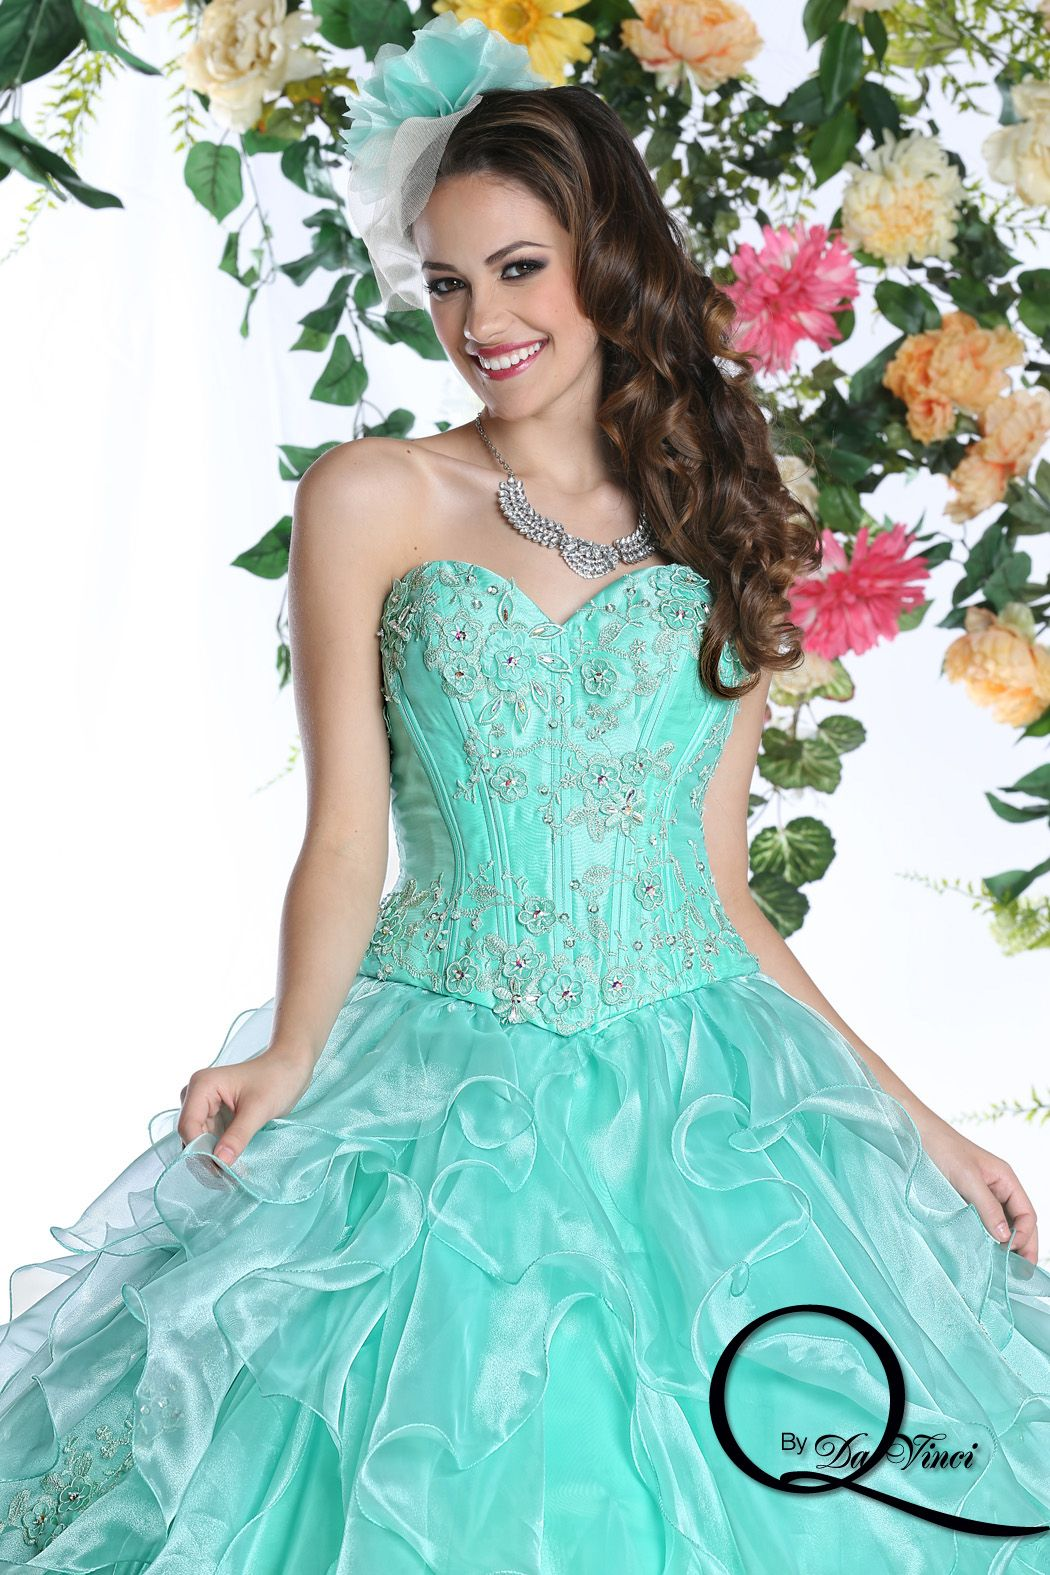 Sweet and chic Q by Davinci style 80255 featuring hermoso Shimmer Organza  in colors Mint, Turquoise, Cerise!